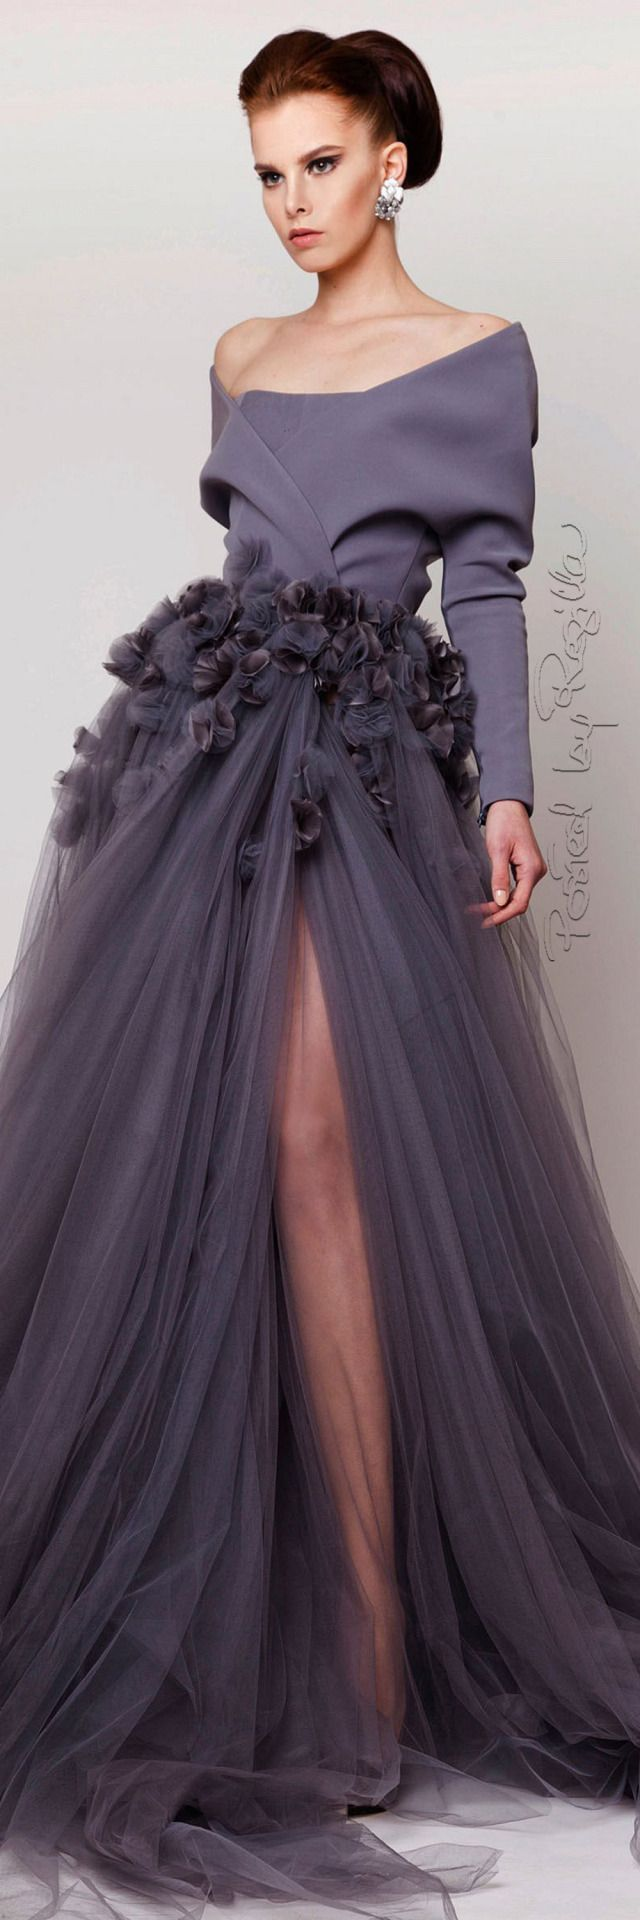 Azzi + Osta ~ Off the Shoulder Gown w Full Chiffon Skirt, 2015